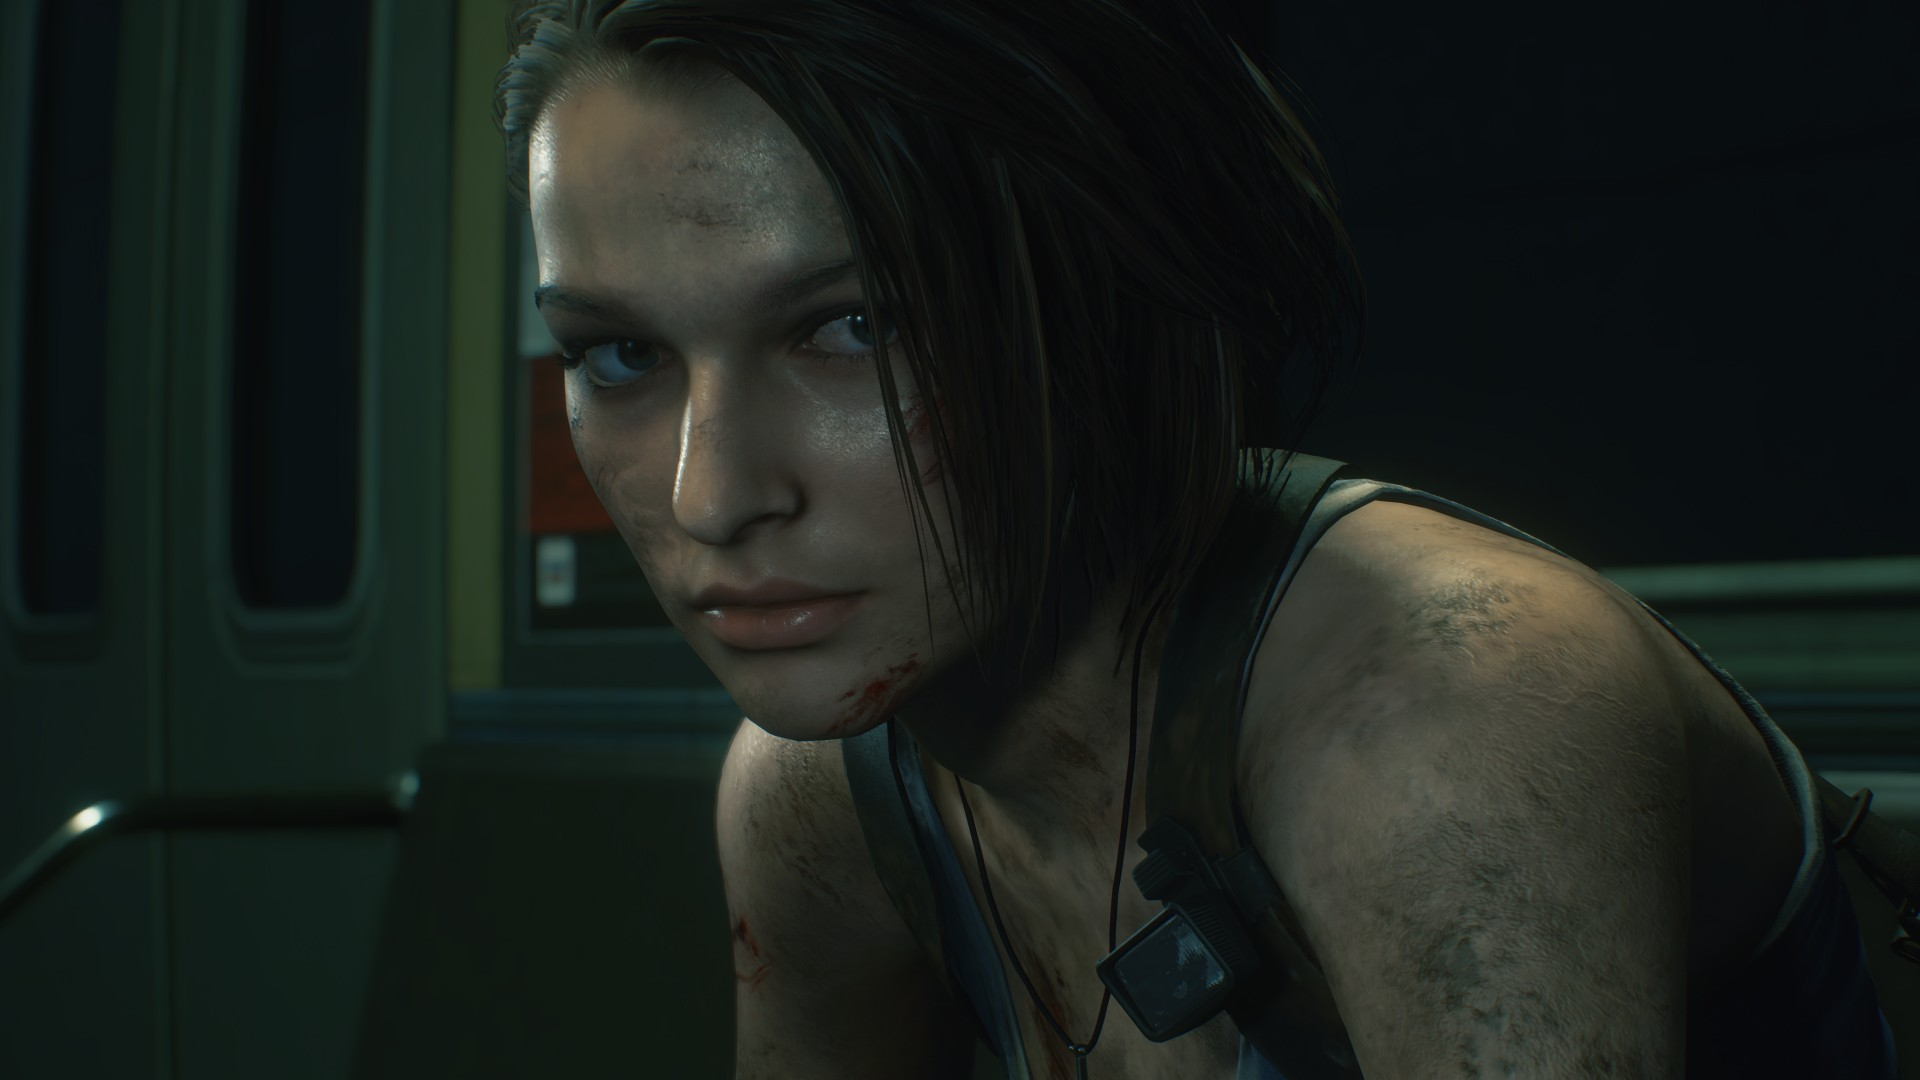 Resident Evil 3 Reveals The New Face Of Jill Valentine